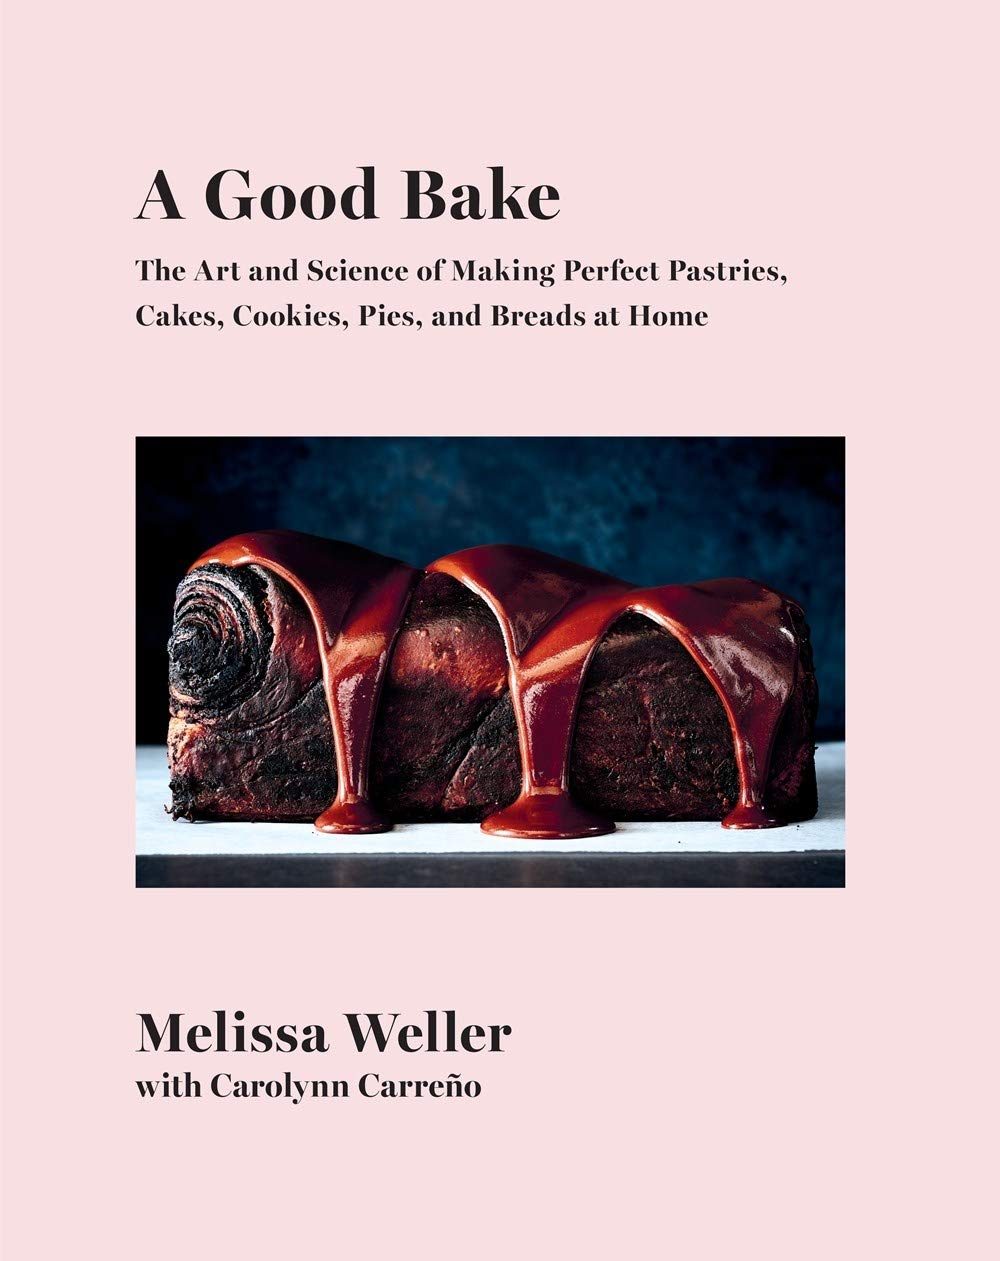 cover of A Good Bake: The Art and Science of Making Perfect Pastries, Cakes, Cookies, Pies, and Breads at Home